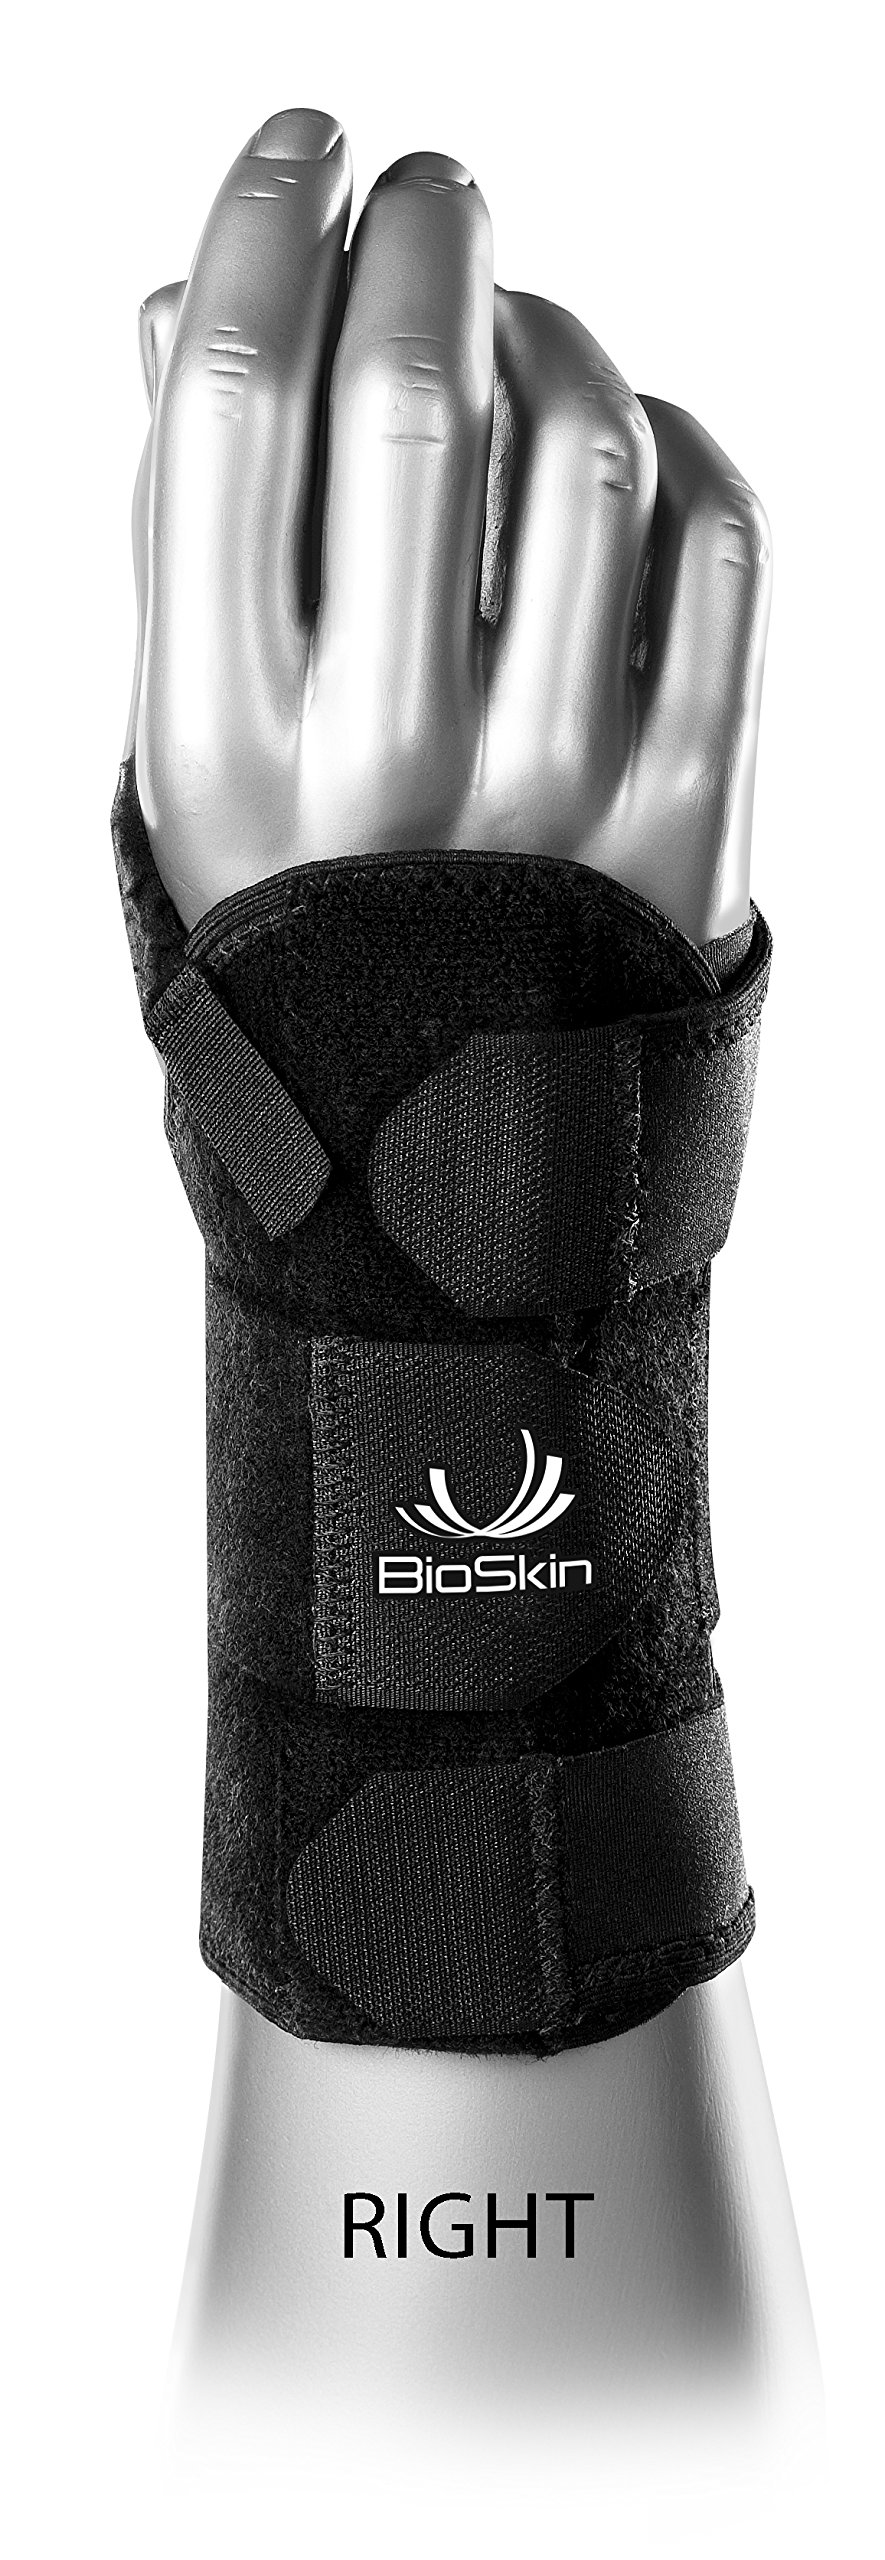 BioSkin DP2 Wrist Brace, Right, X-Large/XX-Large